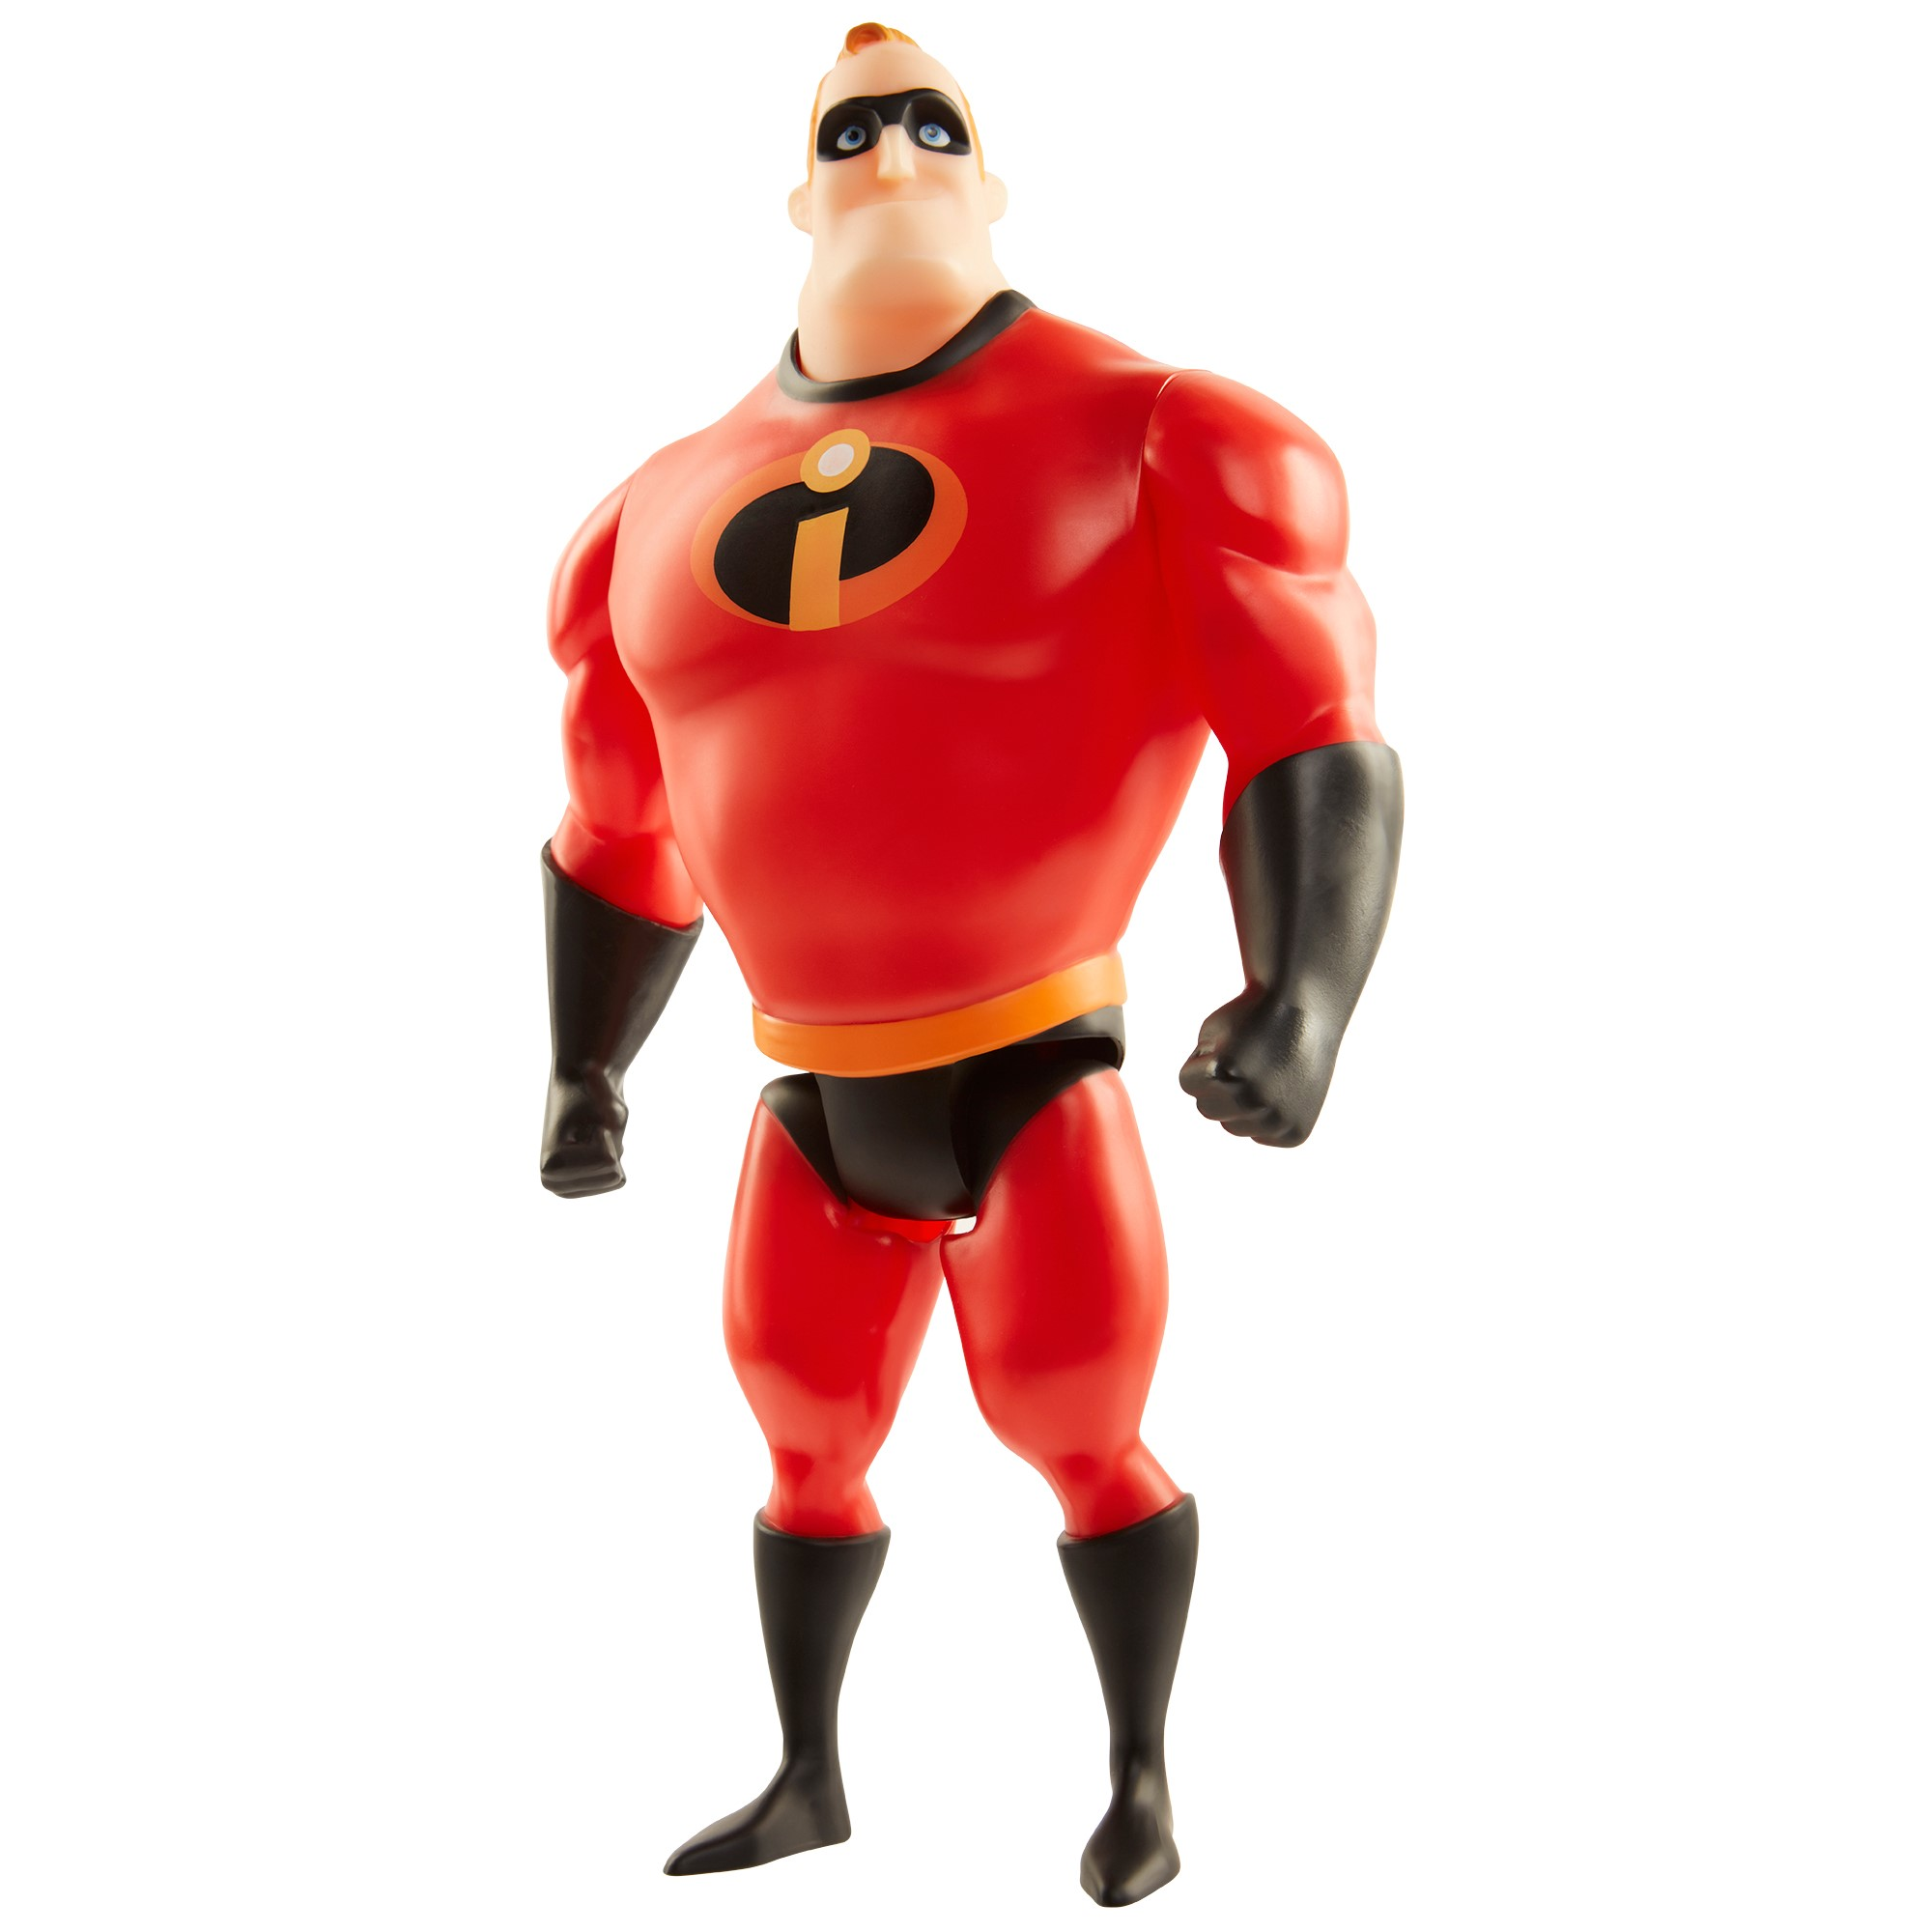 "Incredibles 2 Champion Series 12"" Action Figure - Mr. Incredible"